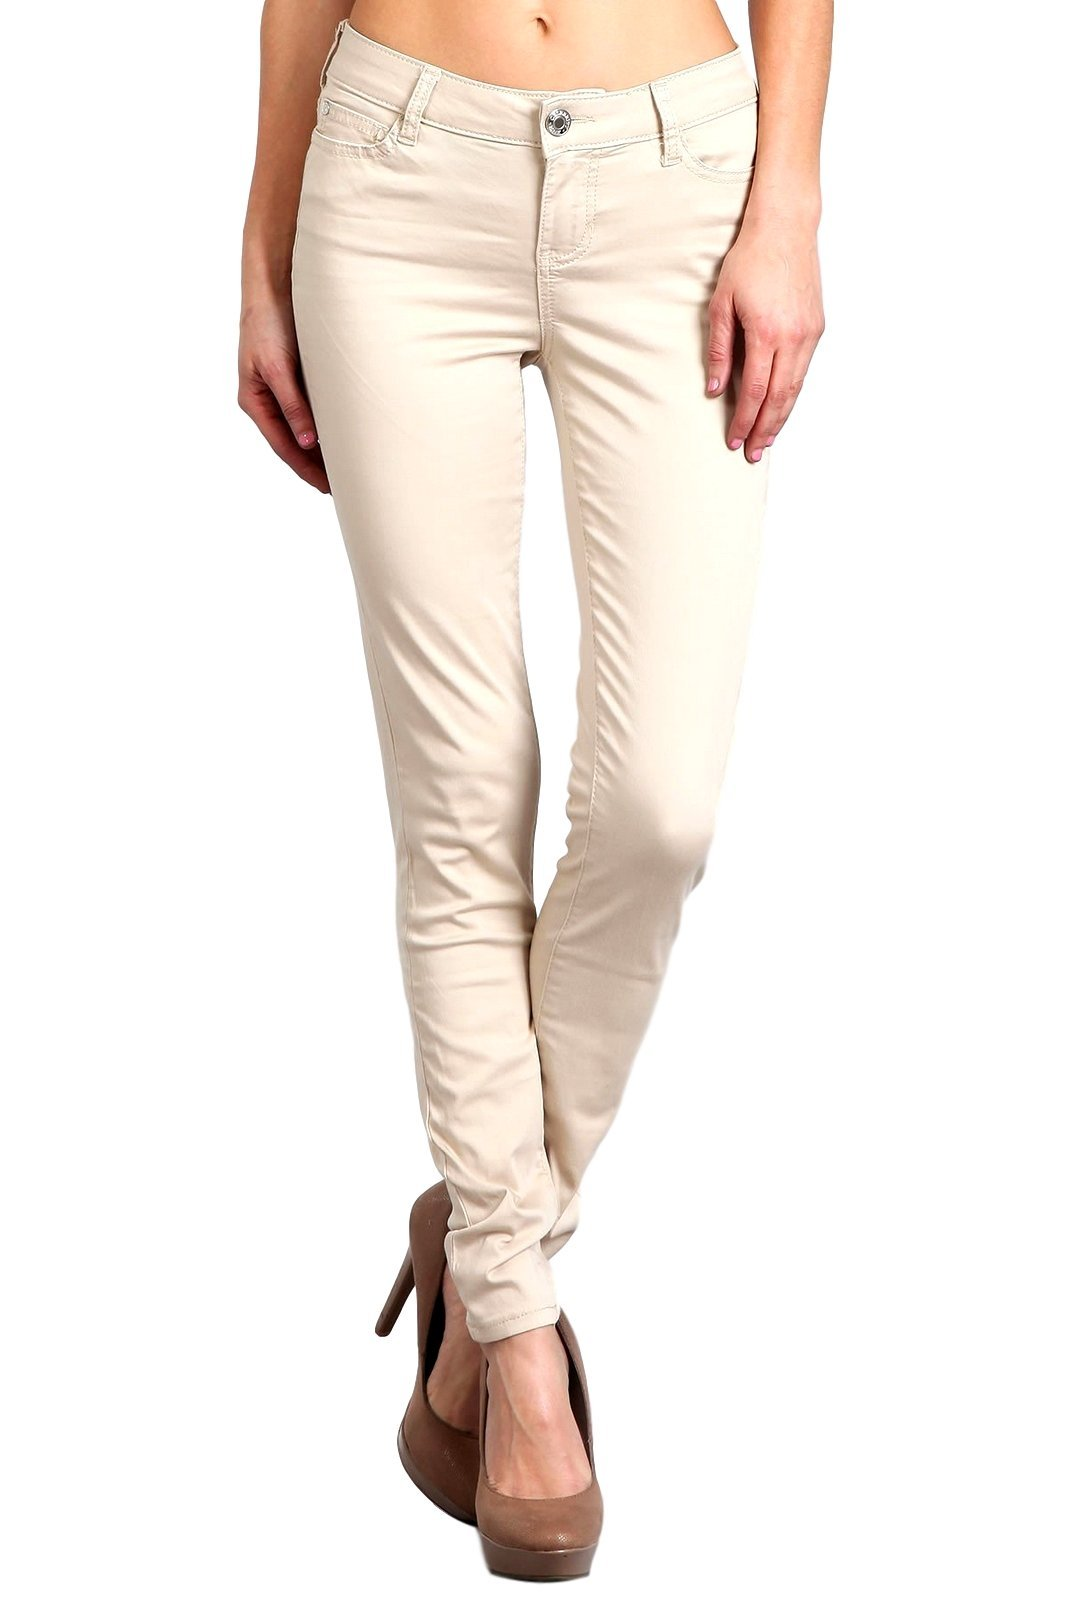 Celebrity Pink Women's Mid Rise Colored Skinny Pants CJ21038Z35 (Stone, 11/30)